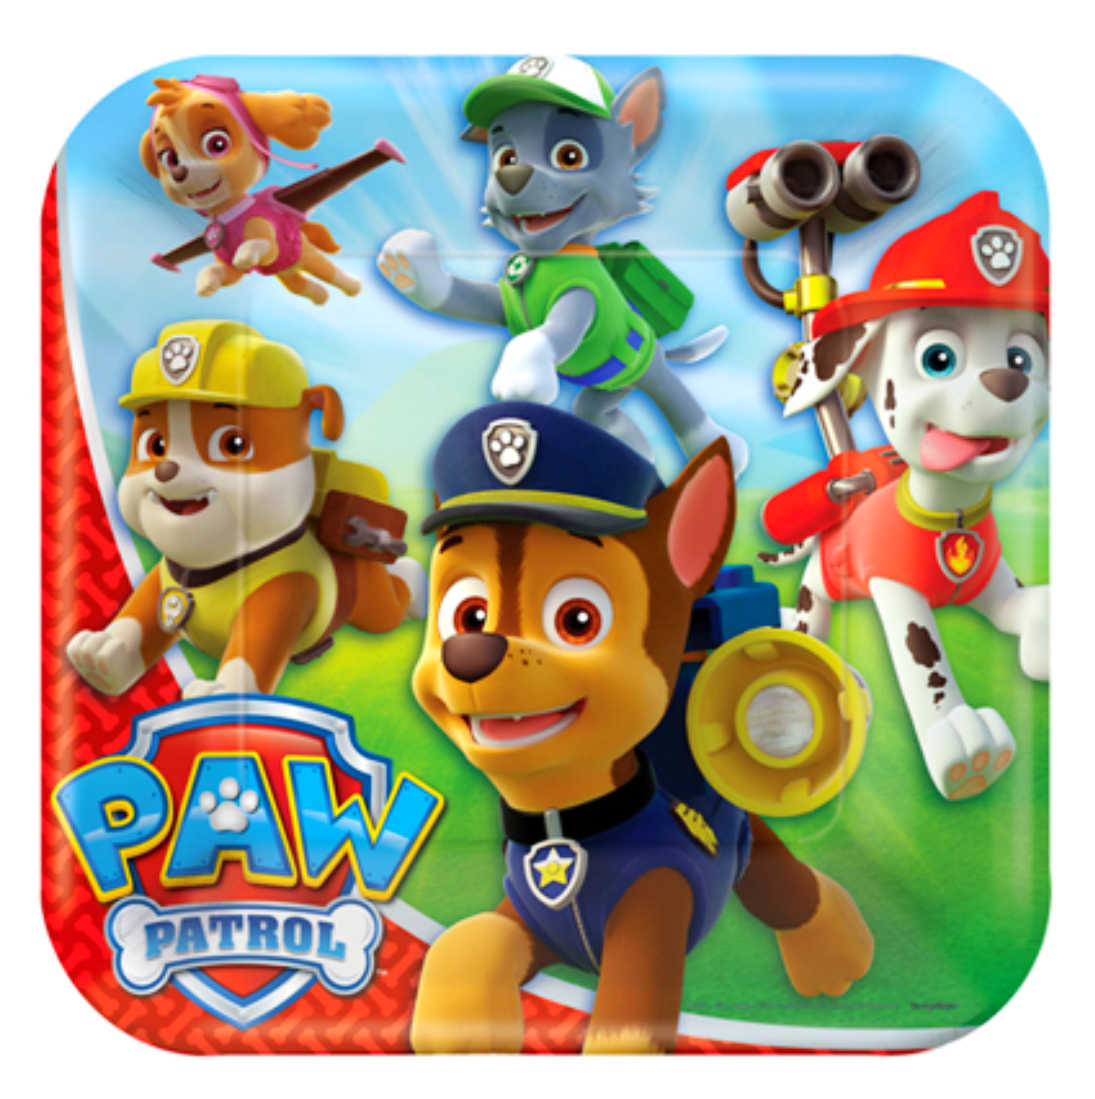 Paw Patrol party plates square lunch size